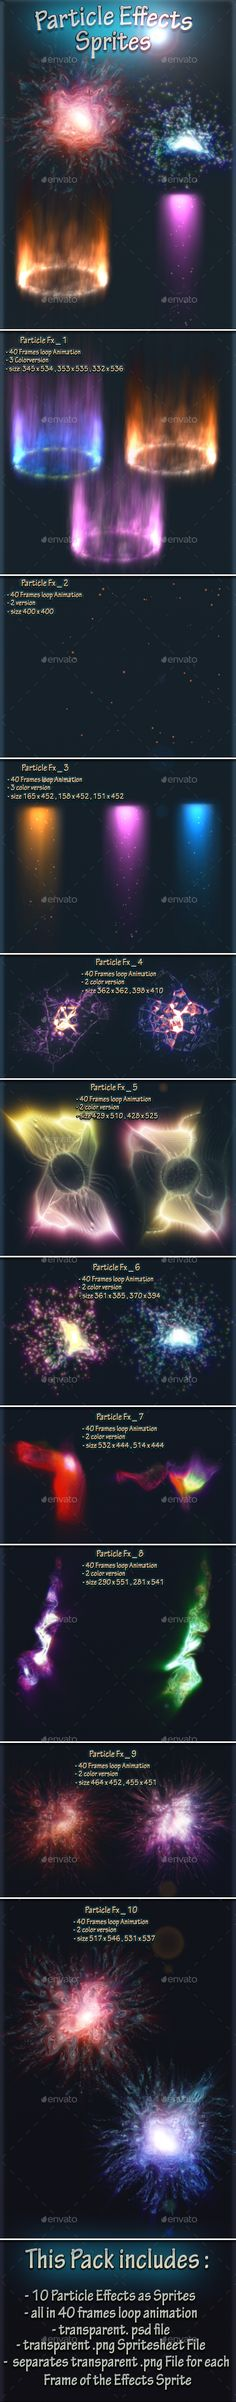 #Particle Effects Sprites - Sprites #Game Assets Download here: https://graphicriver.net/item/particle-effects-sprites/19791848?ref=alena994